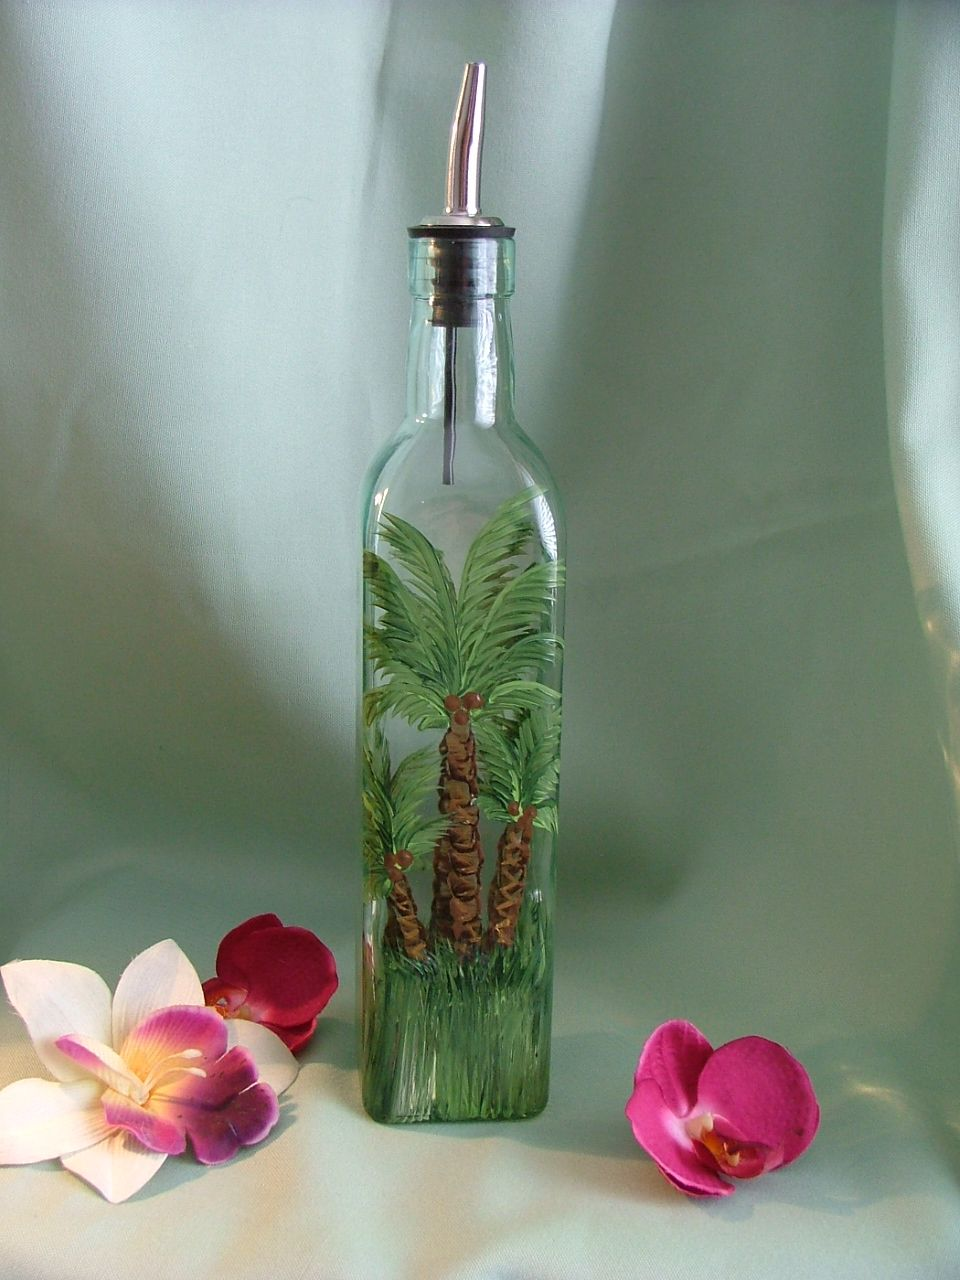 Olive Oil Decorative Bottles This Handpainted Bottle Is Good For Olive Oil Dishwashing Liquid